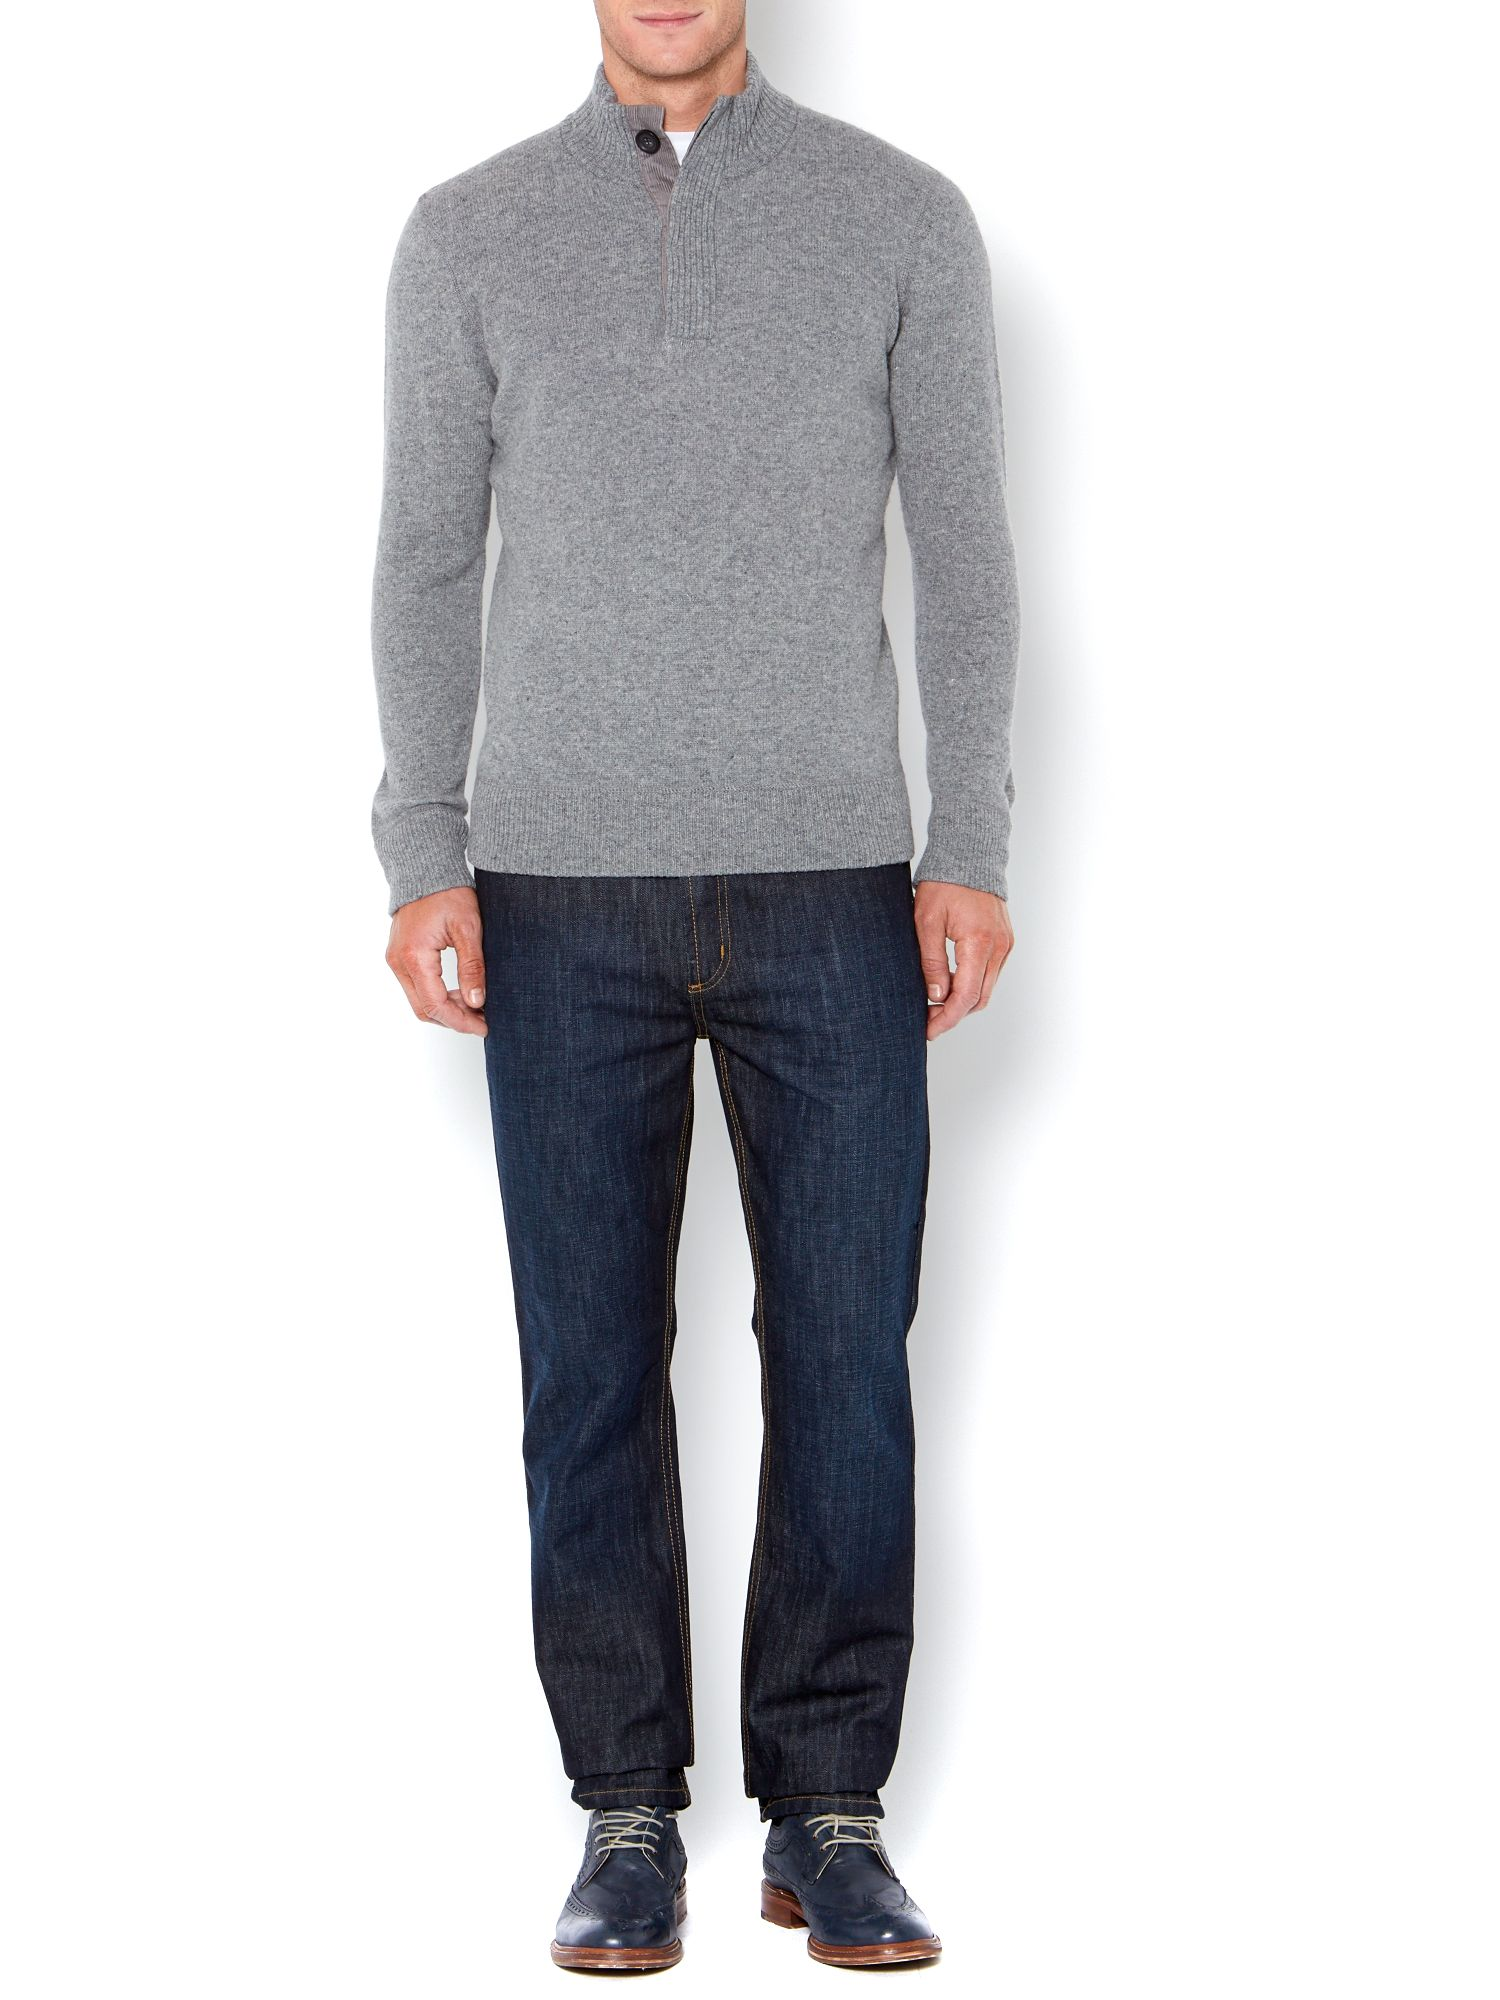 The heathmoor lambswool jumper